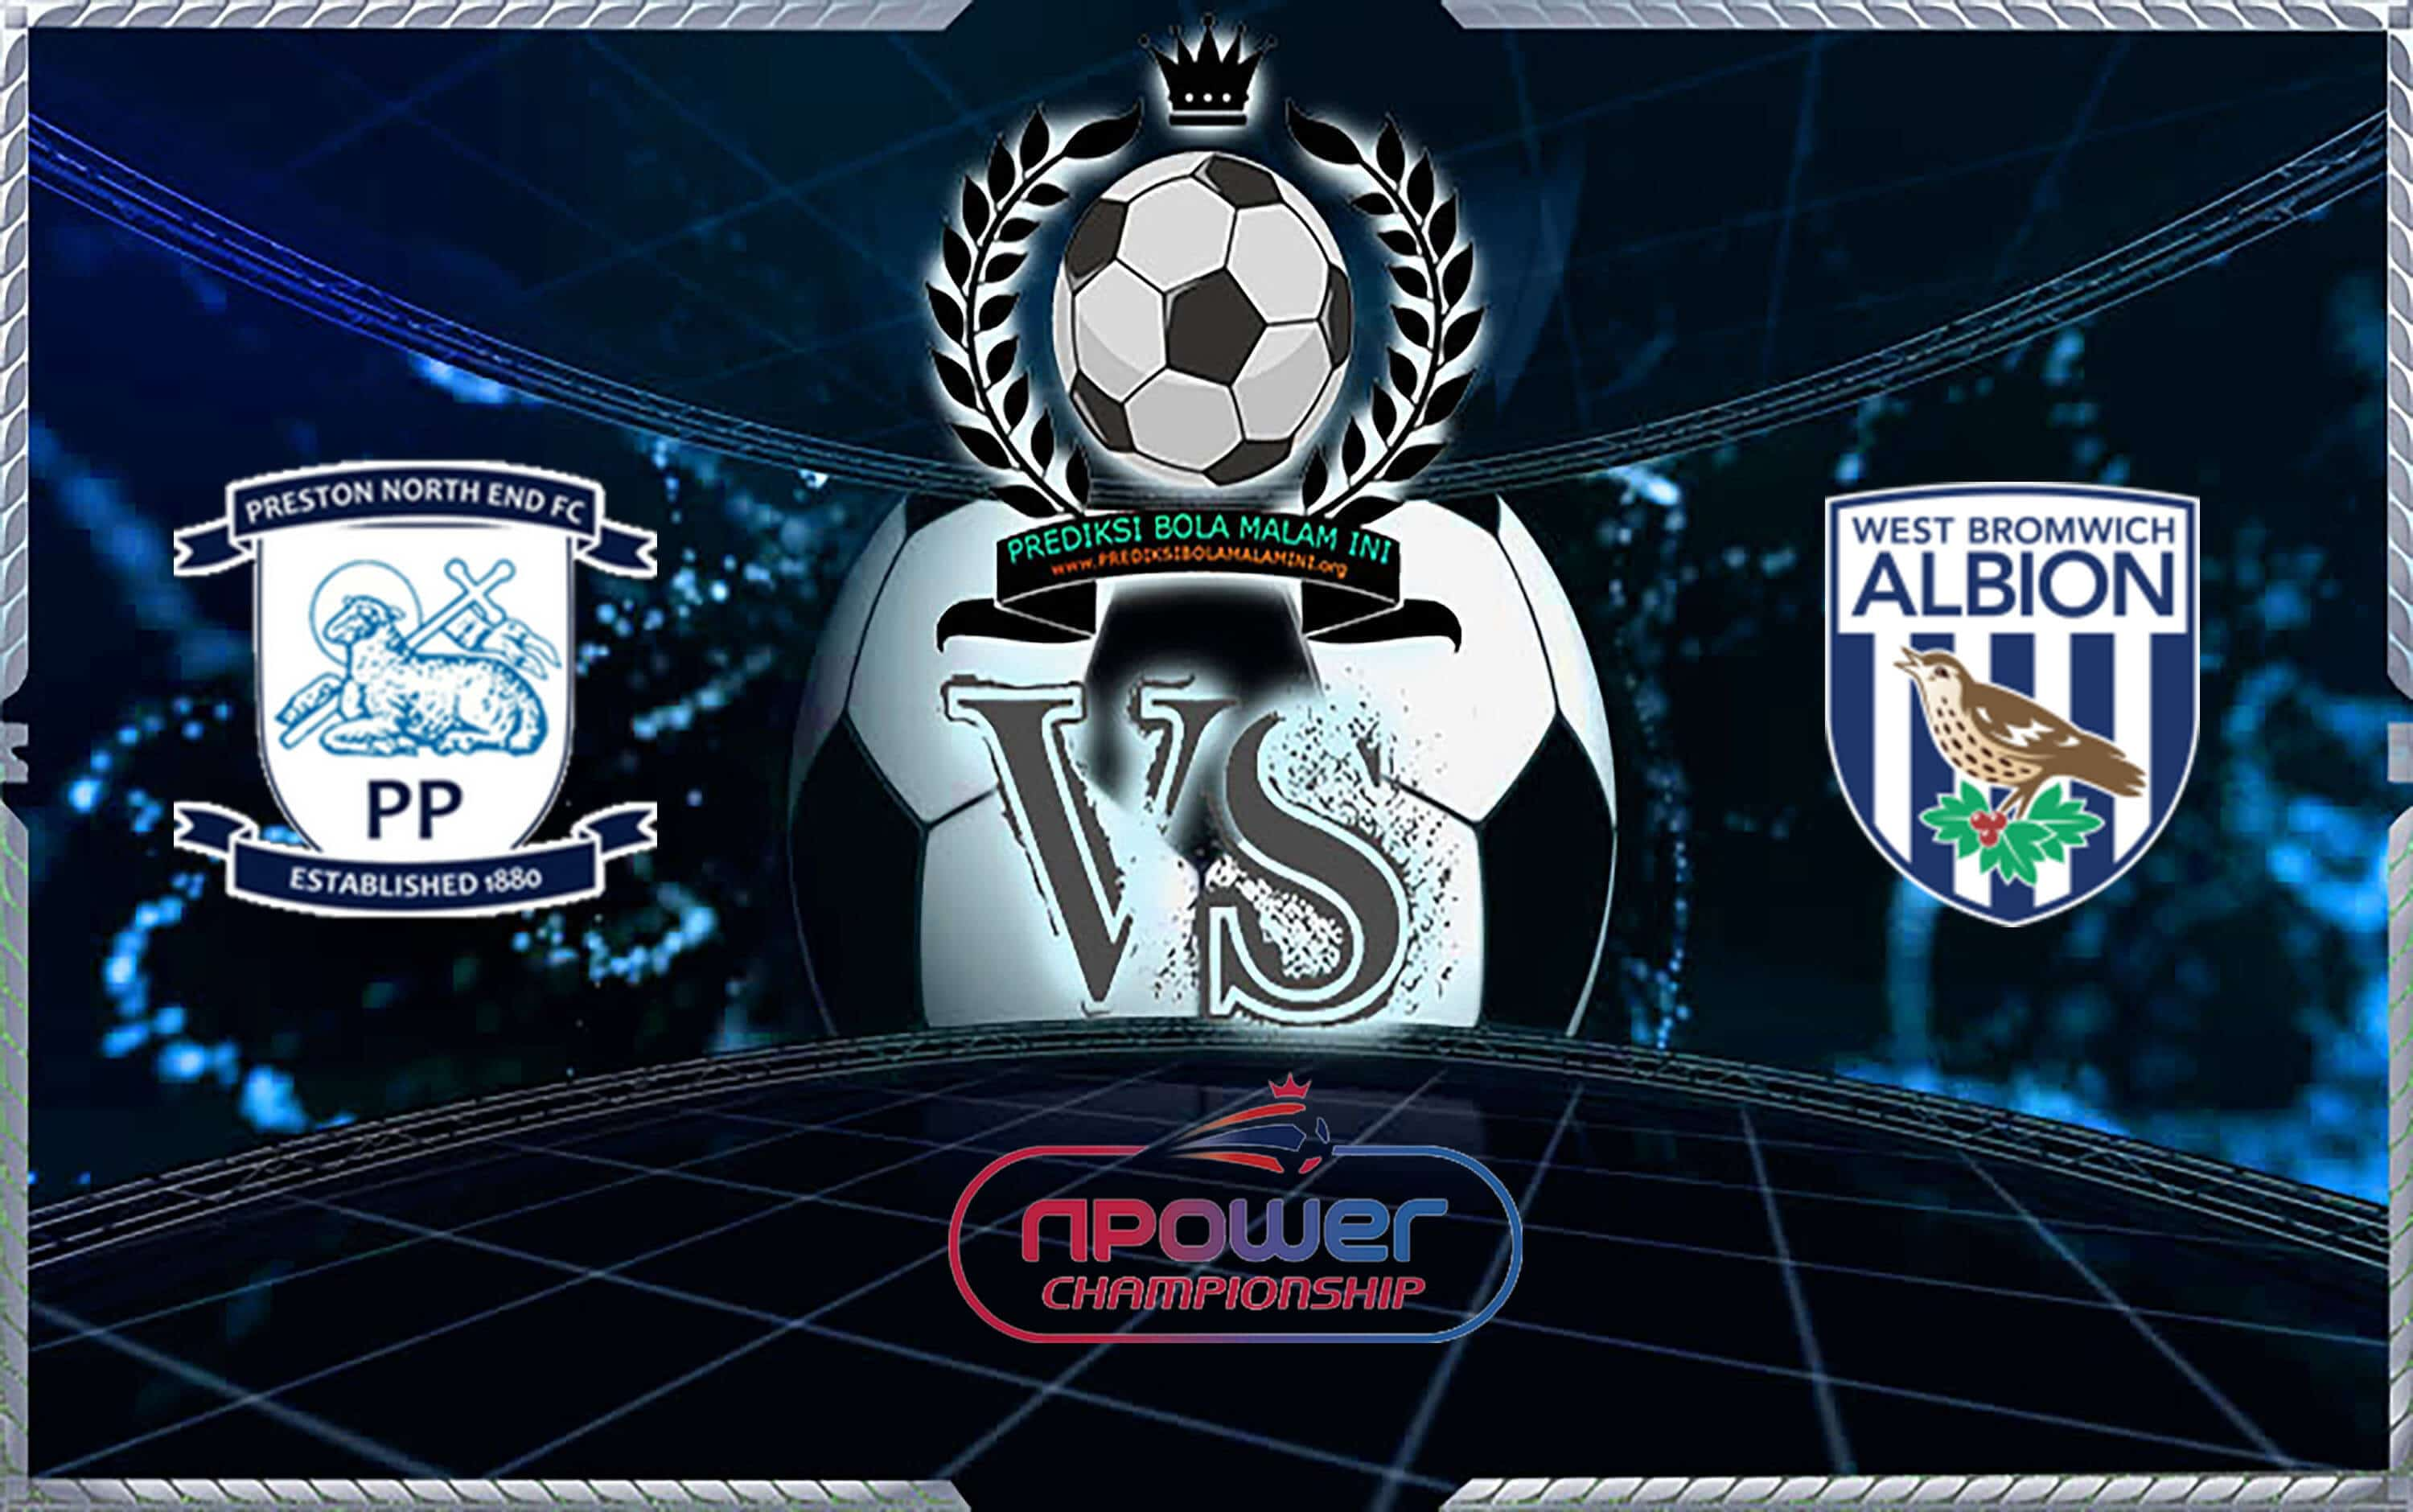 "Prediksi Skor Preston North End vs West Bromwich Albion 3 Desember 2019 ""width ="" 3000 ""height ="" 1880 ""/> </p> <p> <span style="